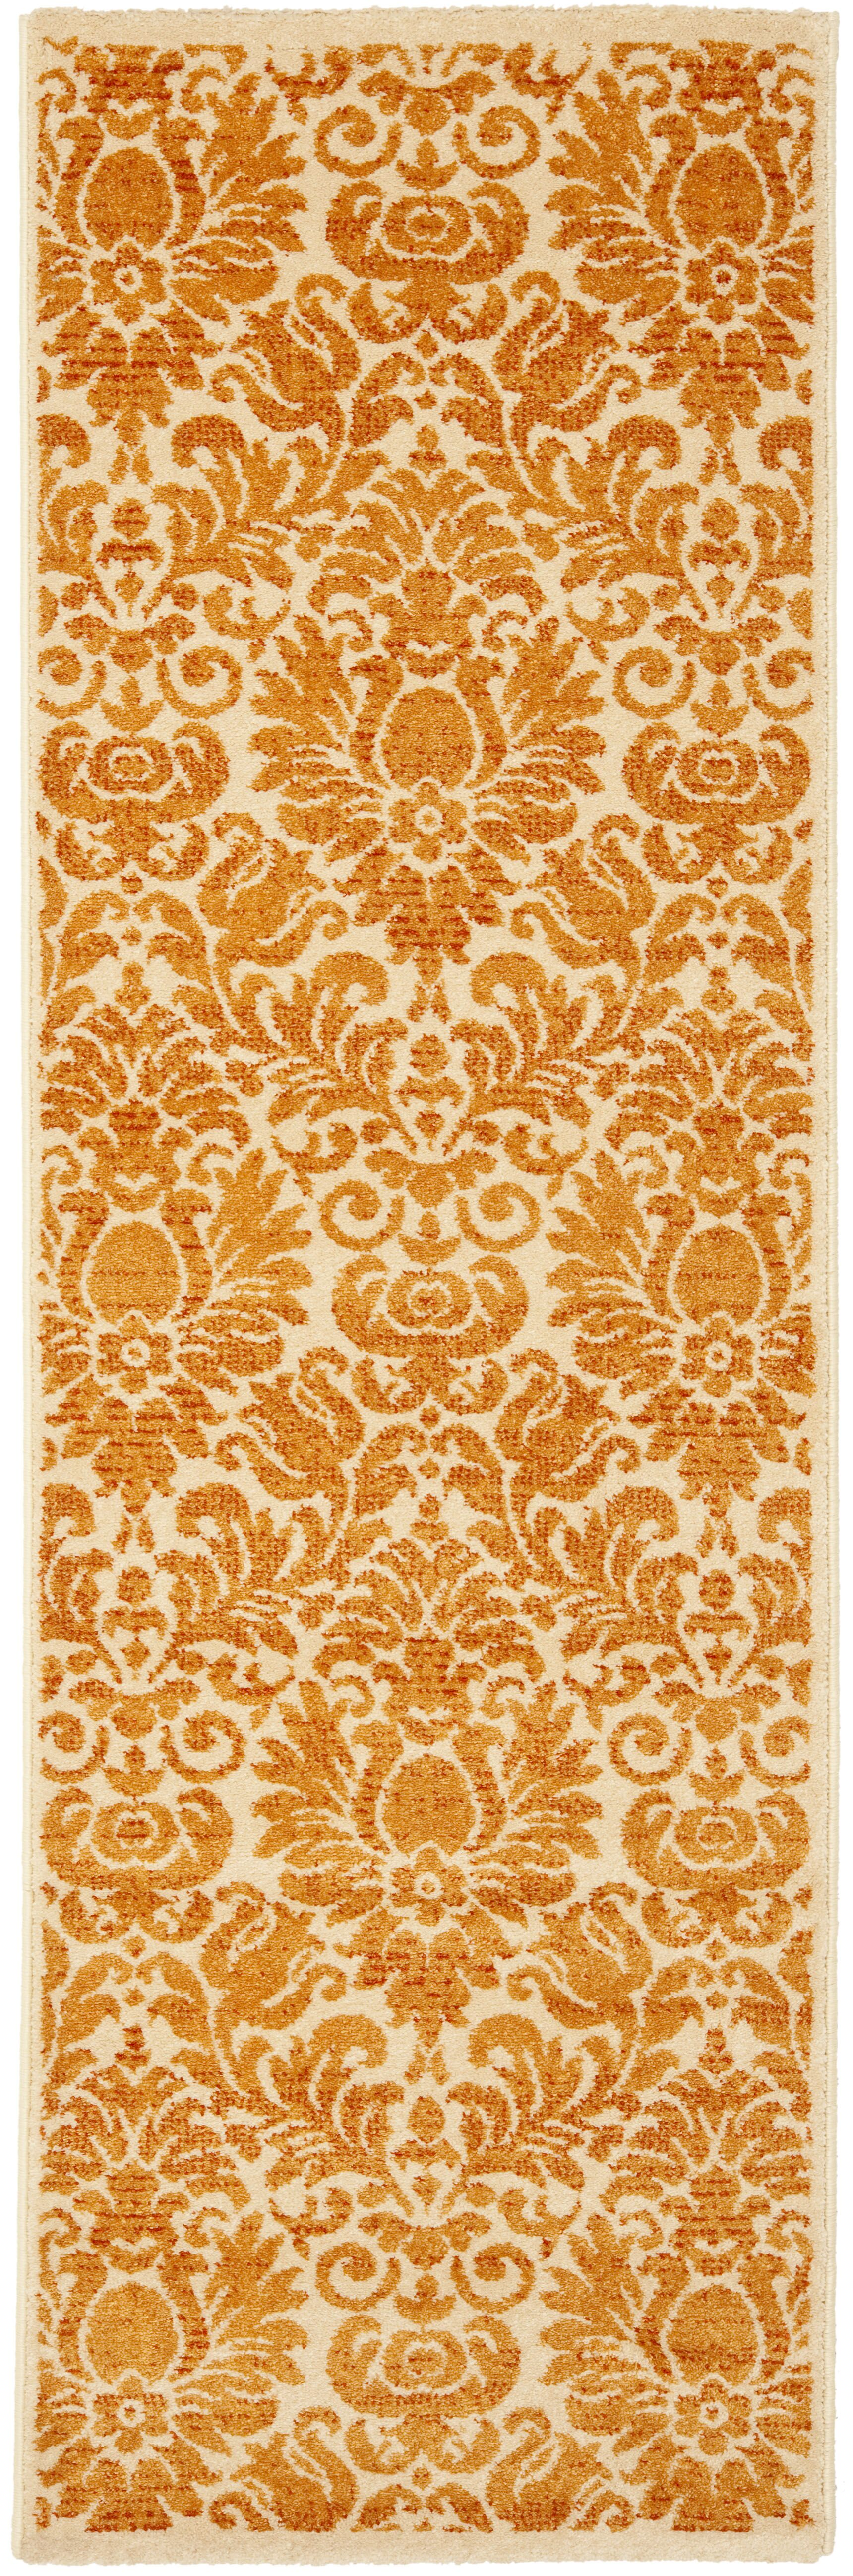 Cargin Red Indoor/Outdoor Area Rug Rug Size: Runner 2'4